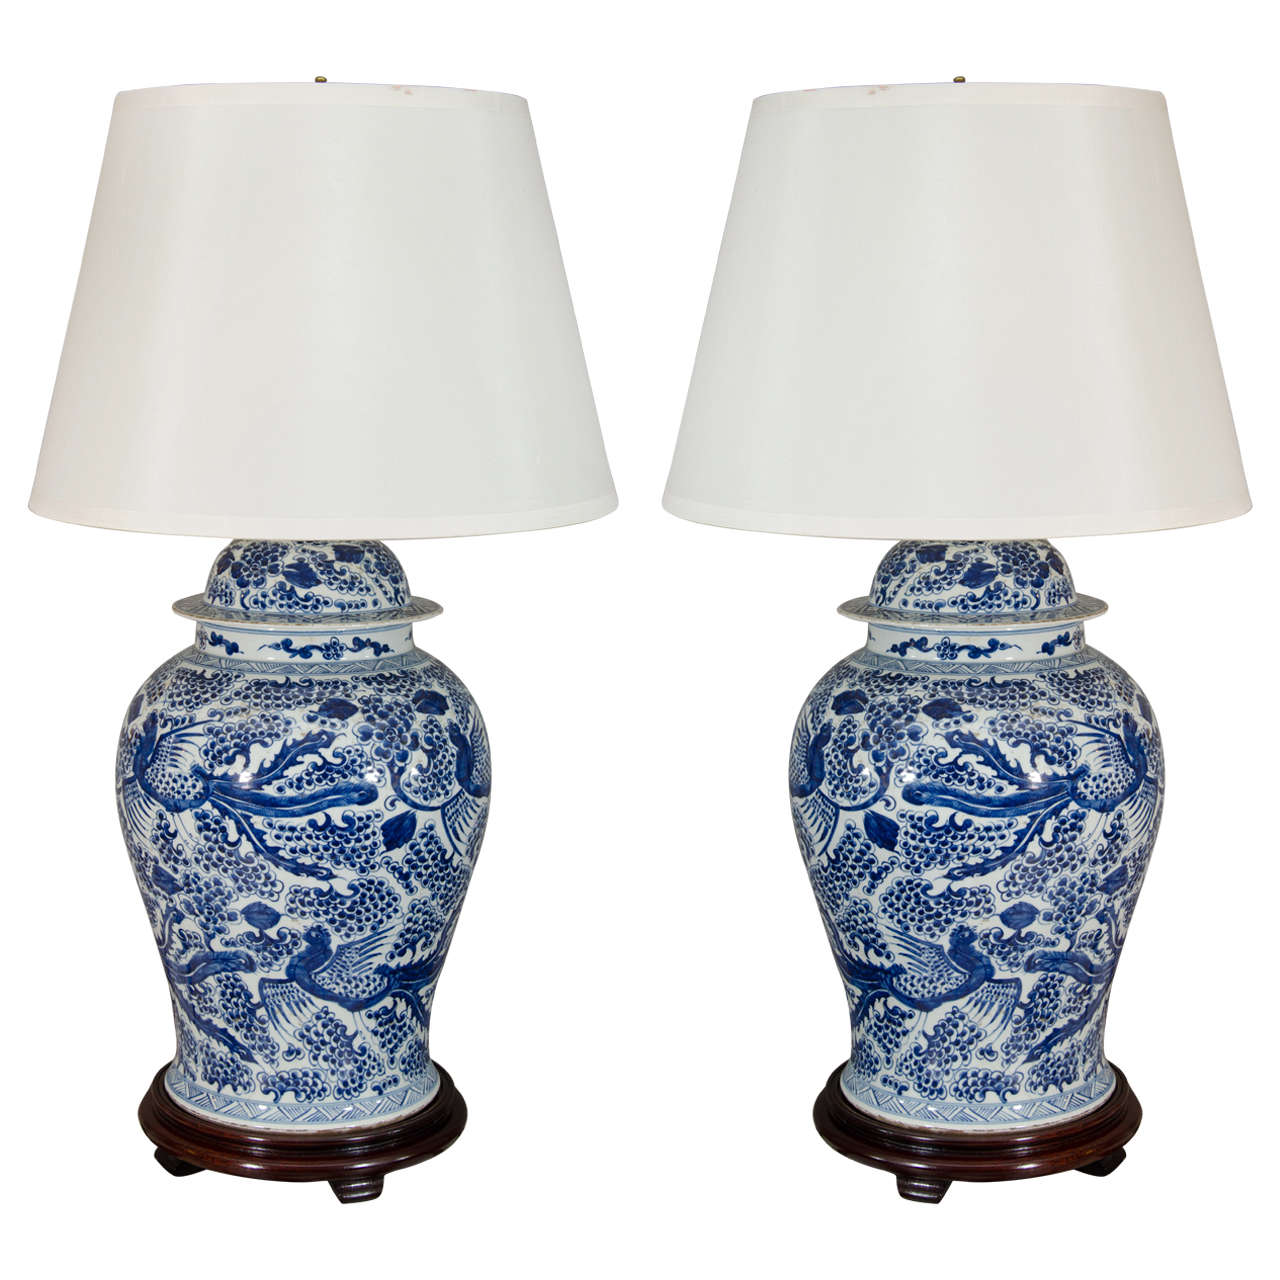 Pair of Temple Jar Lamps with Phoenix and Blossom Motif 1